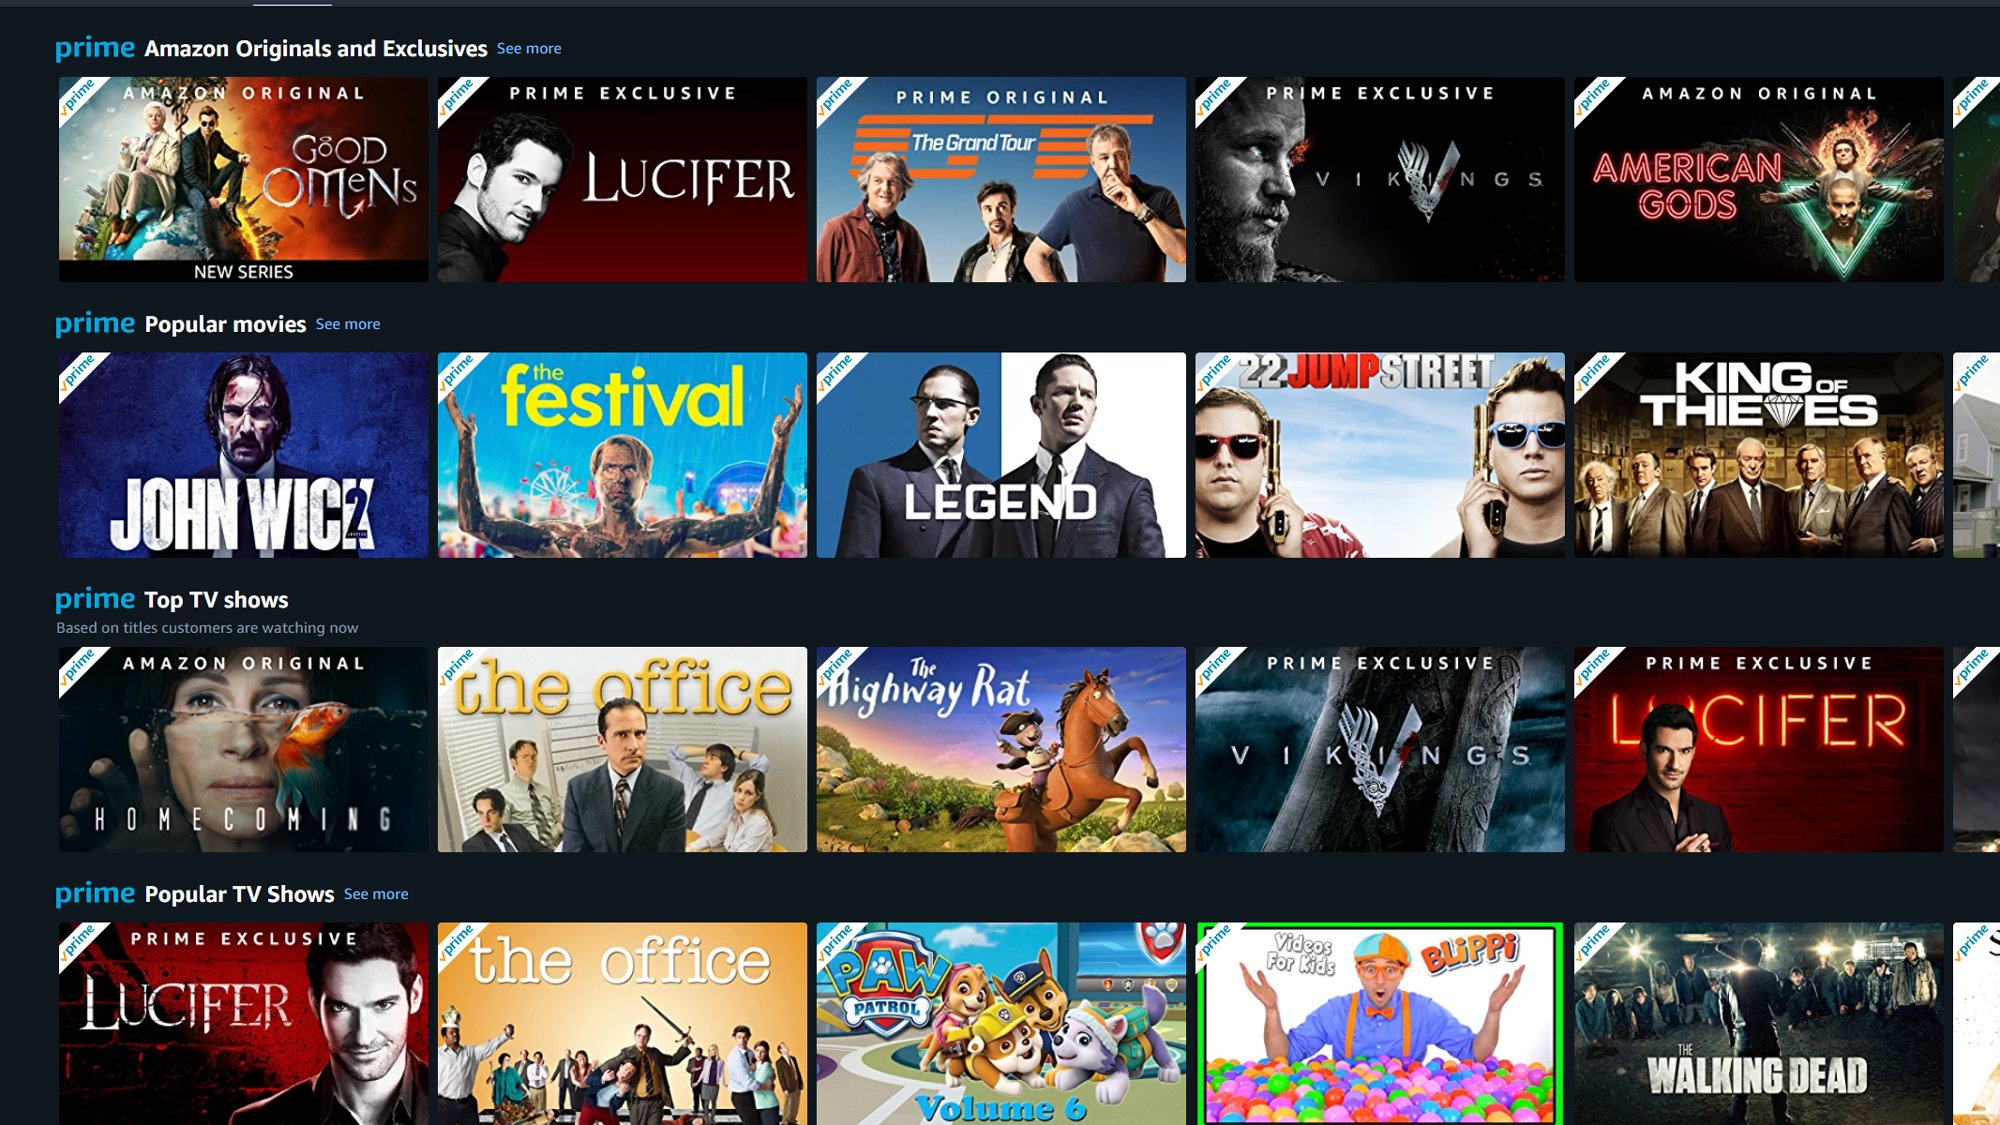 What film should i watch on amazon prime